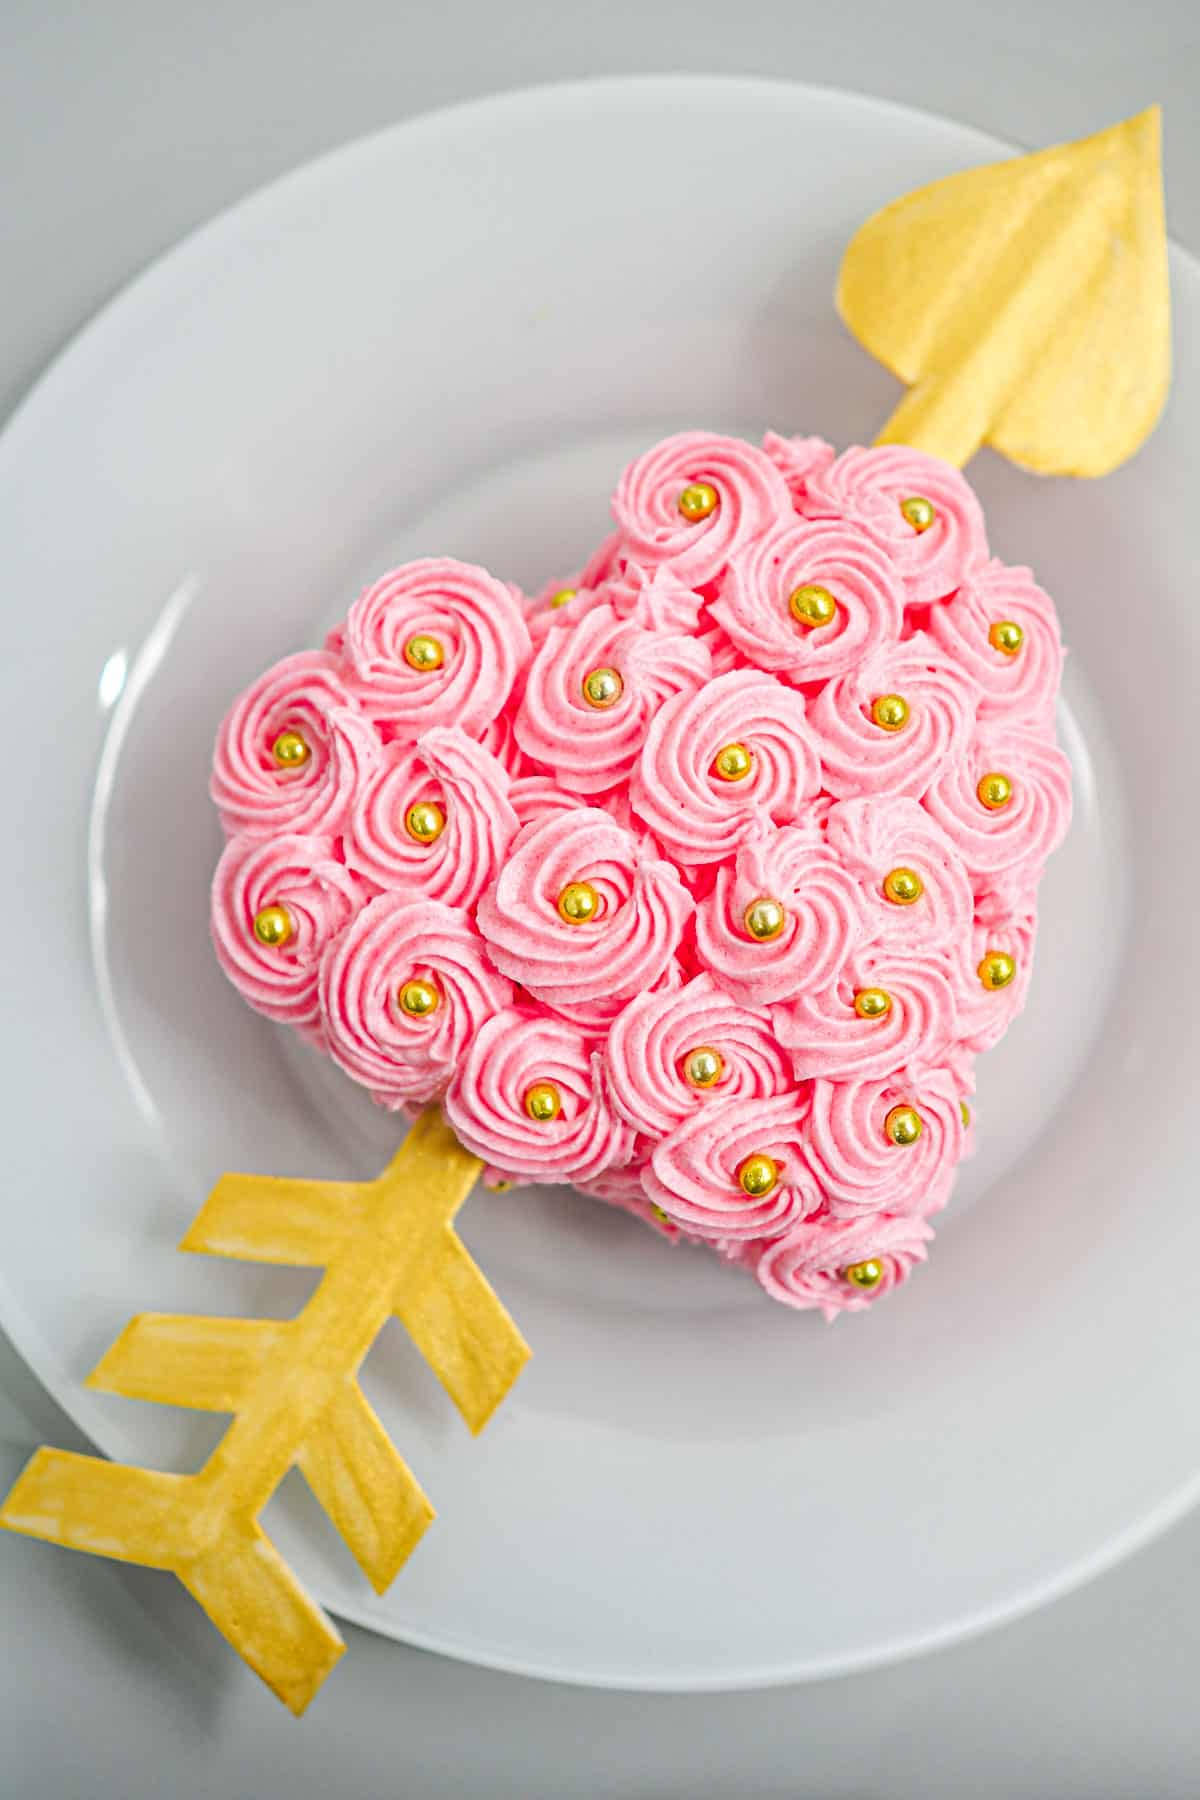 A pink buttercream rossette frosted heart shaped cake with a gold gum paste arrow through it.